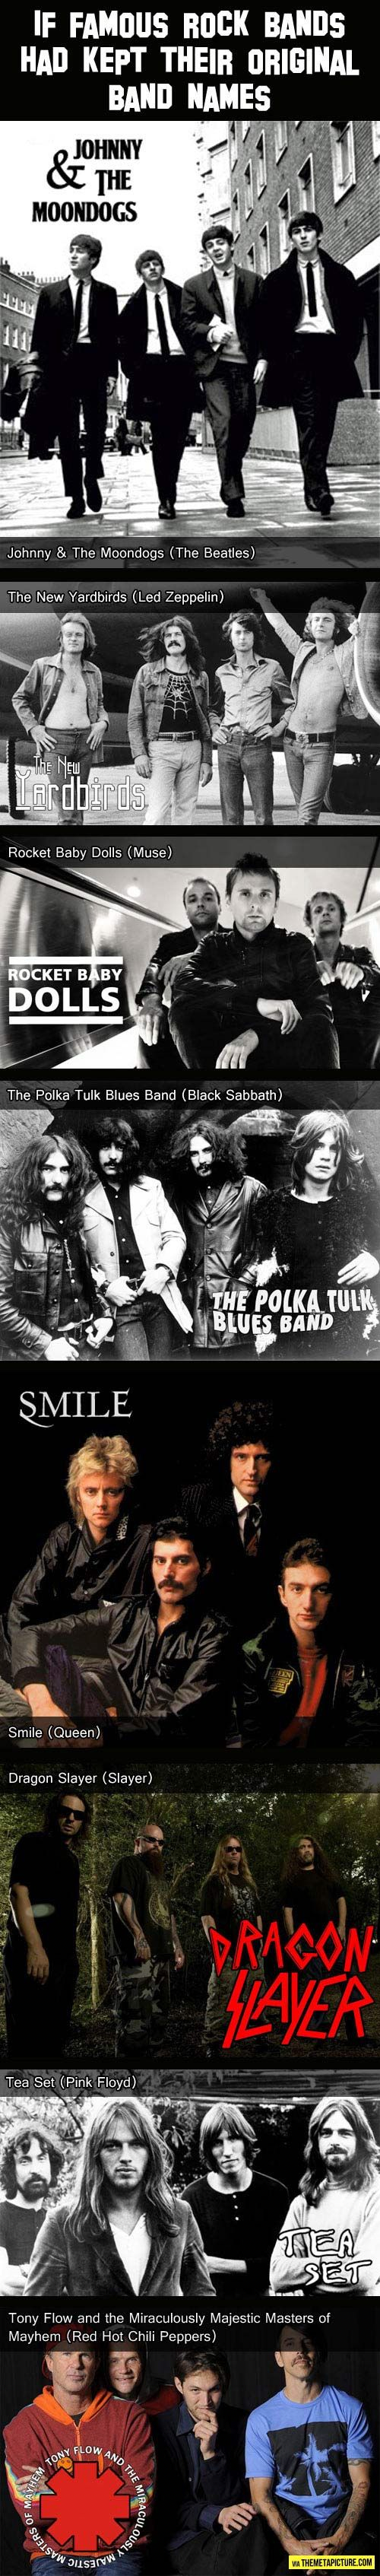 Black Sabbath was going to be The Polka Tulk Blues Band!!? :/  But I like the name Johnny & the Moondogs. That's kinda neat